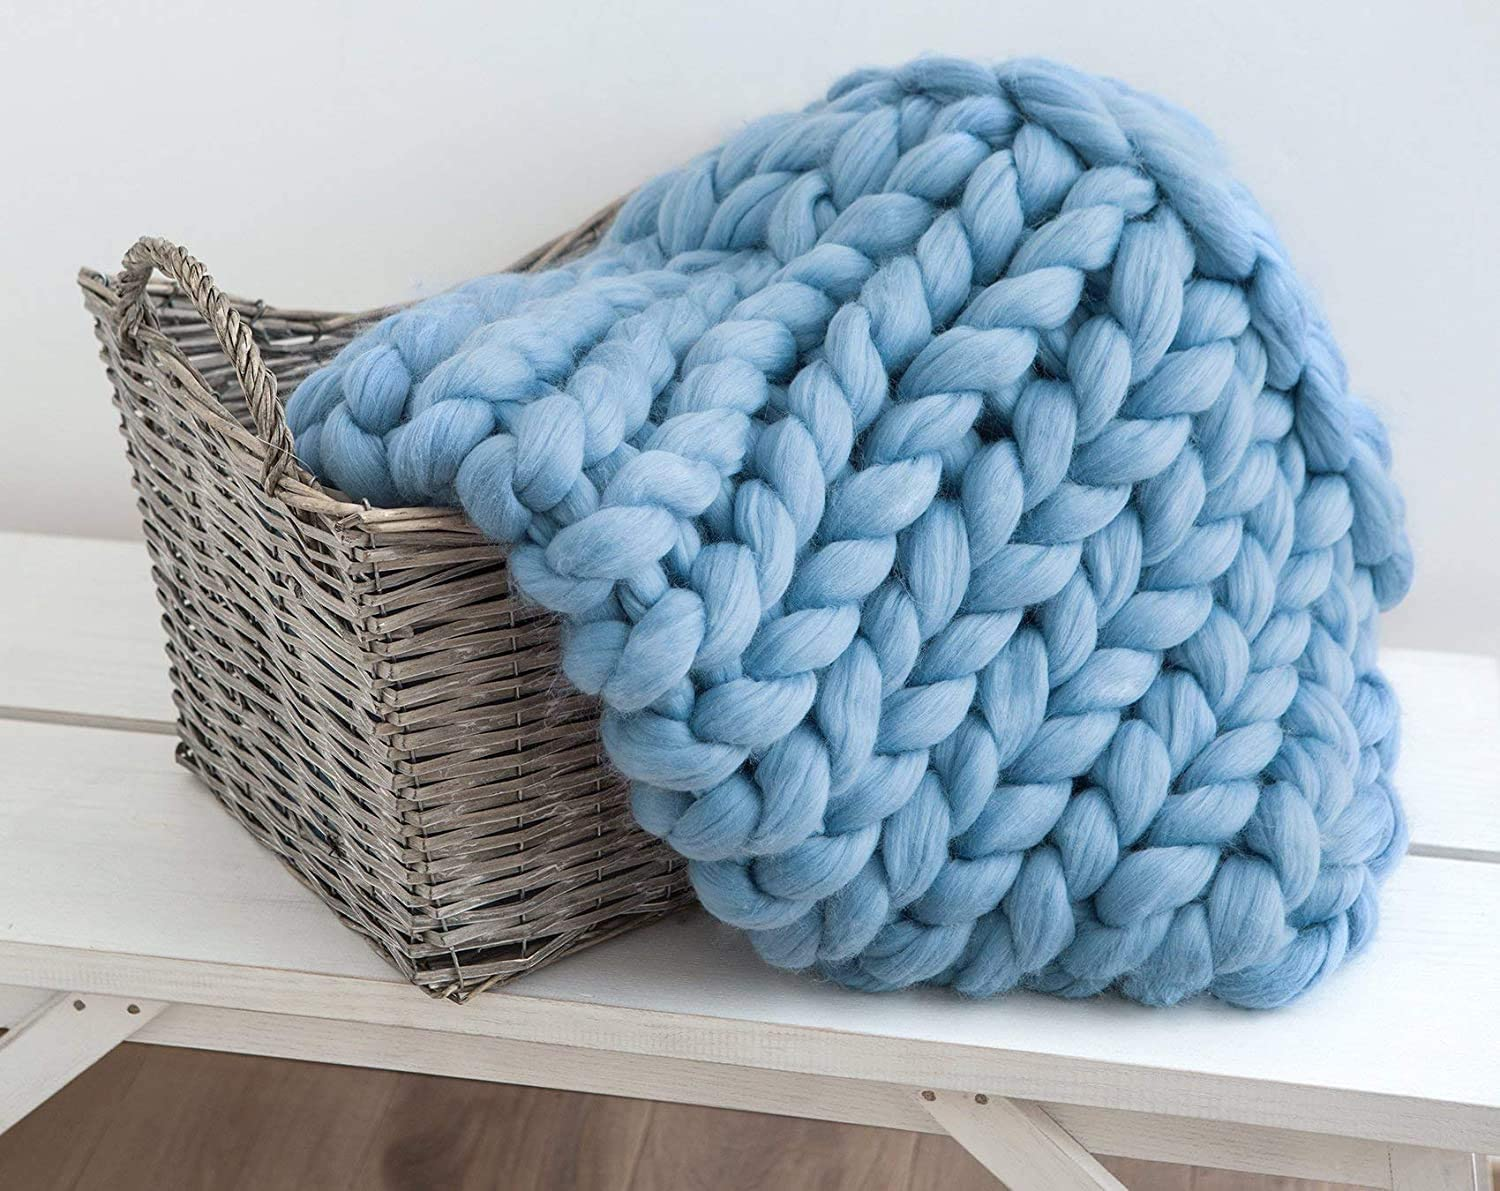 Chunky Knit Blanket Merino Wool free shipping Hand Bedroom 70% OFF Outlet Hom Throw Boho Made